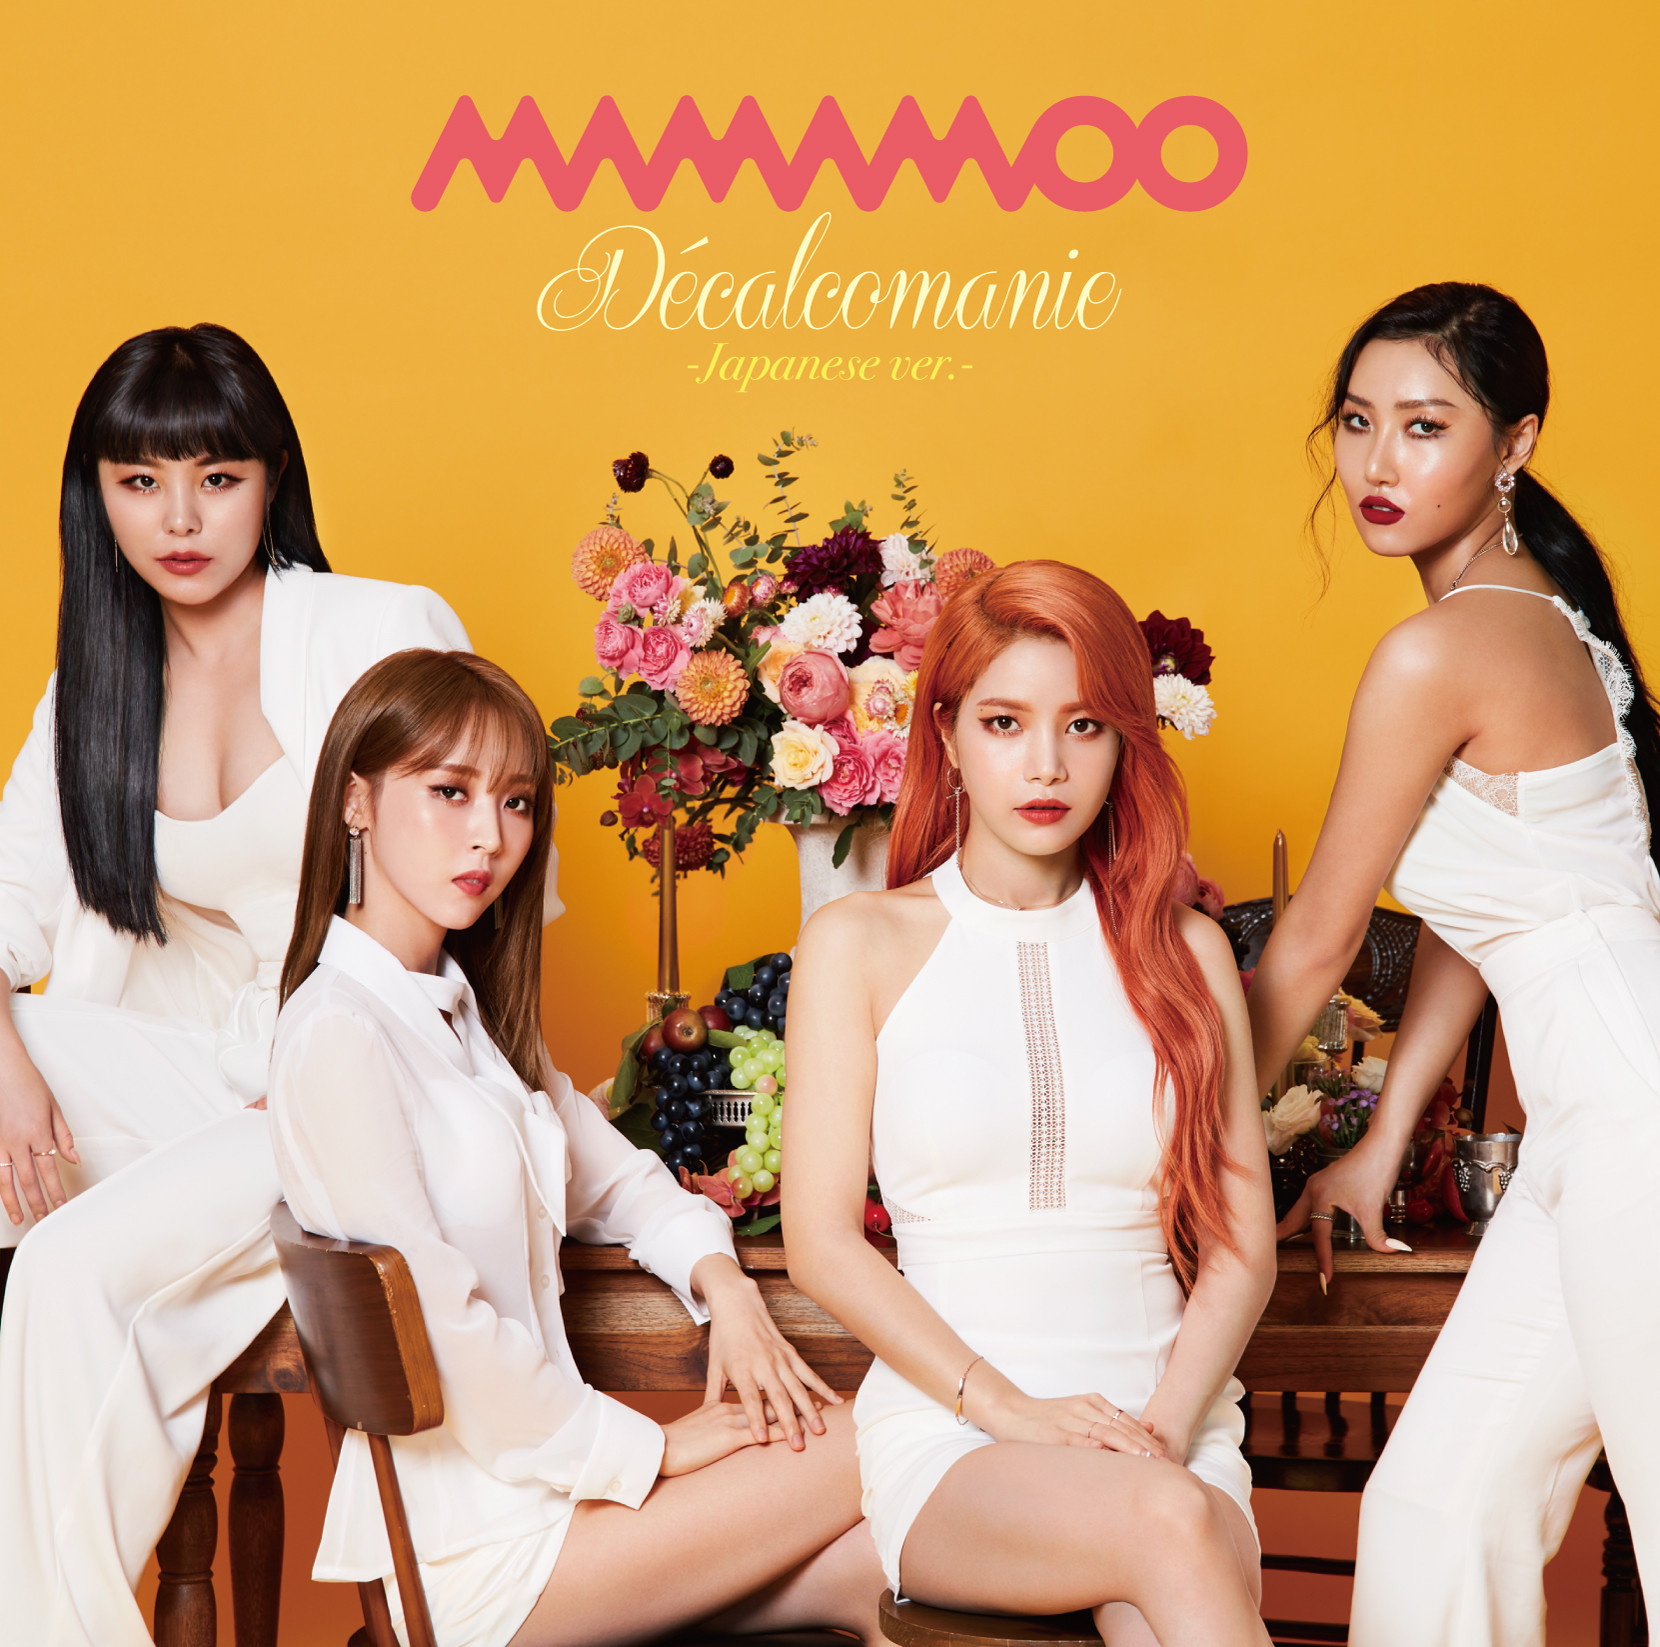 [MAMAMOO] Decalcomanie -Japanese ver.A